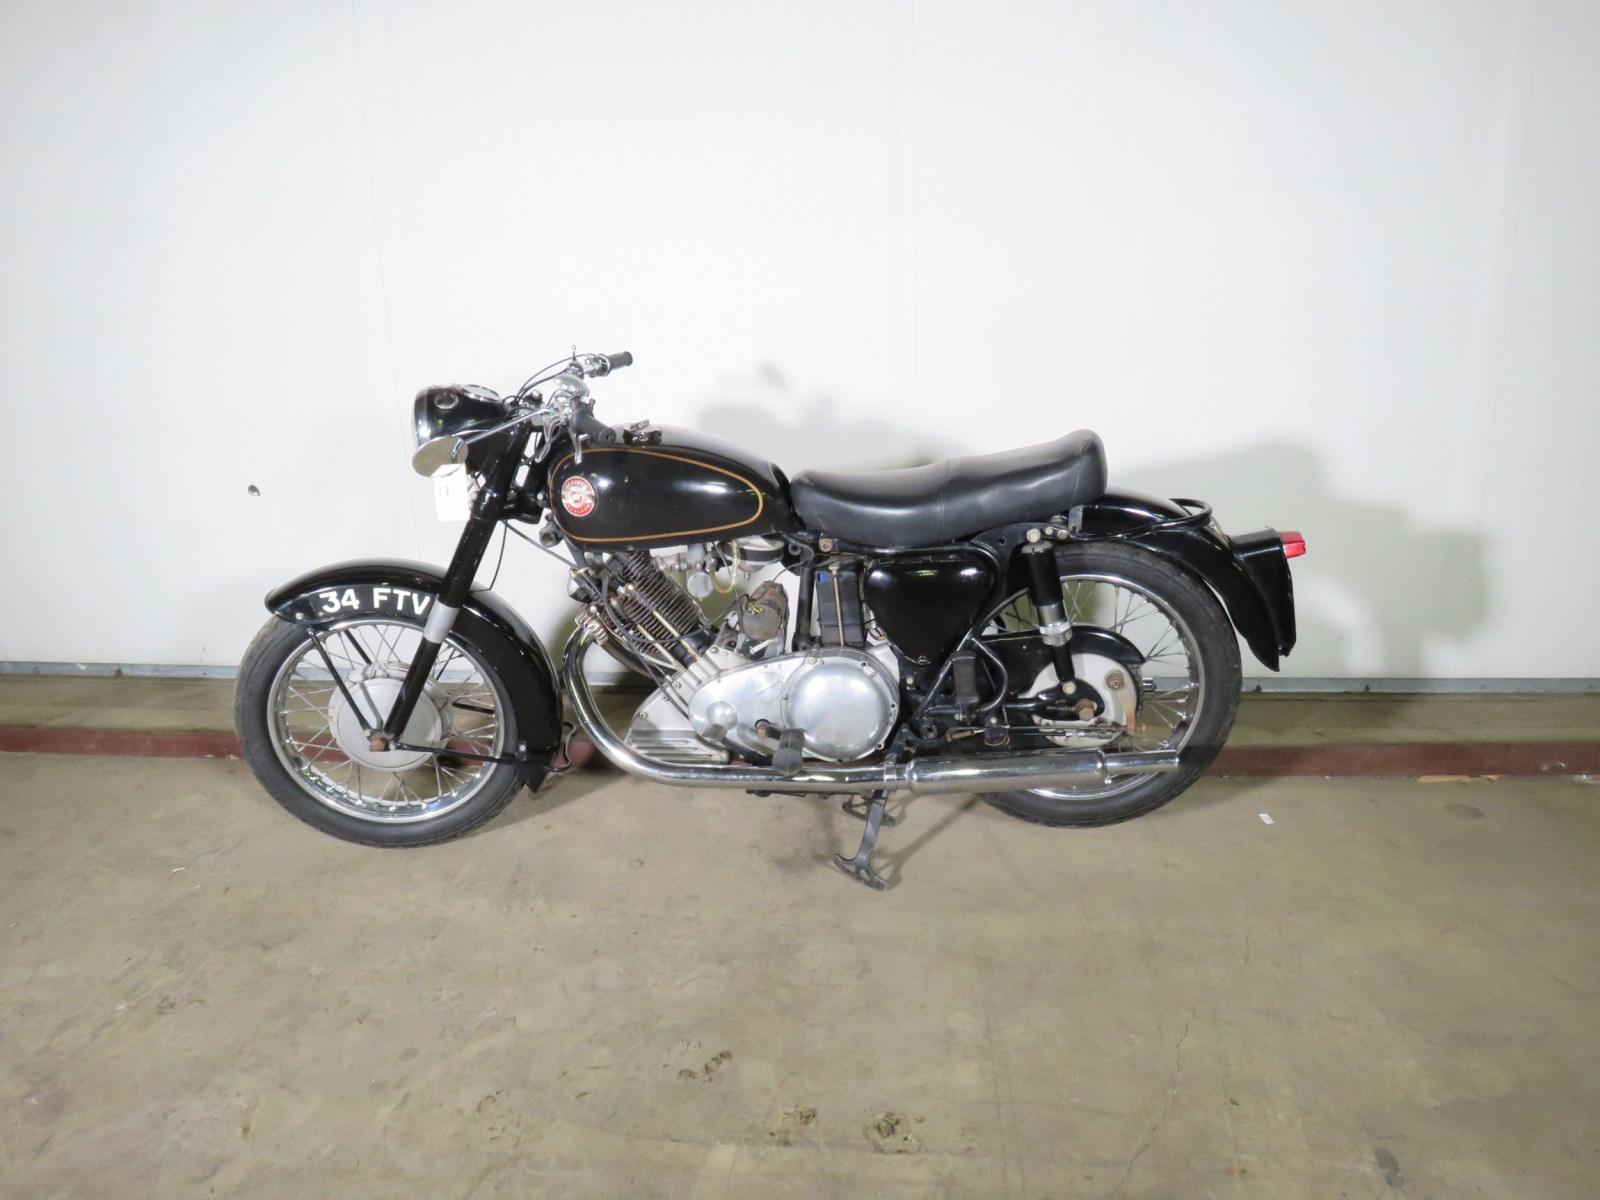 1959 Panther Model 120 Motorcycle - Image 2